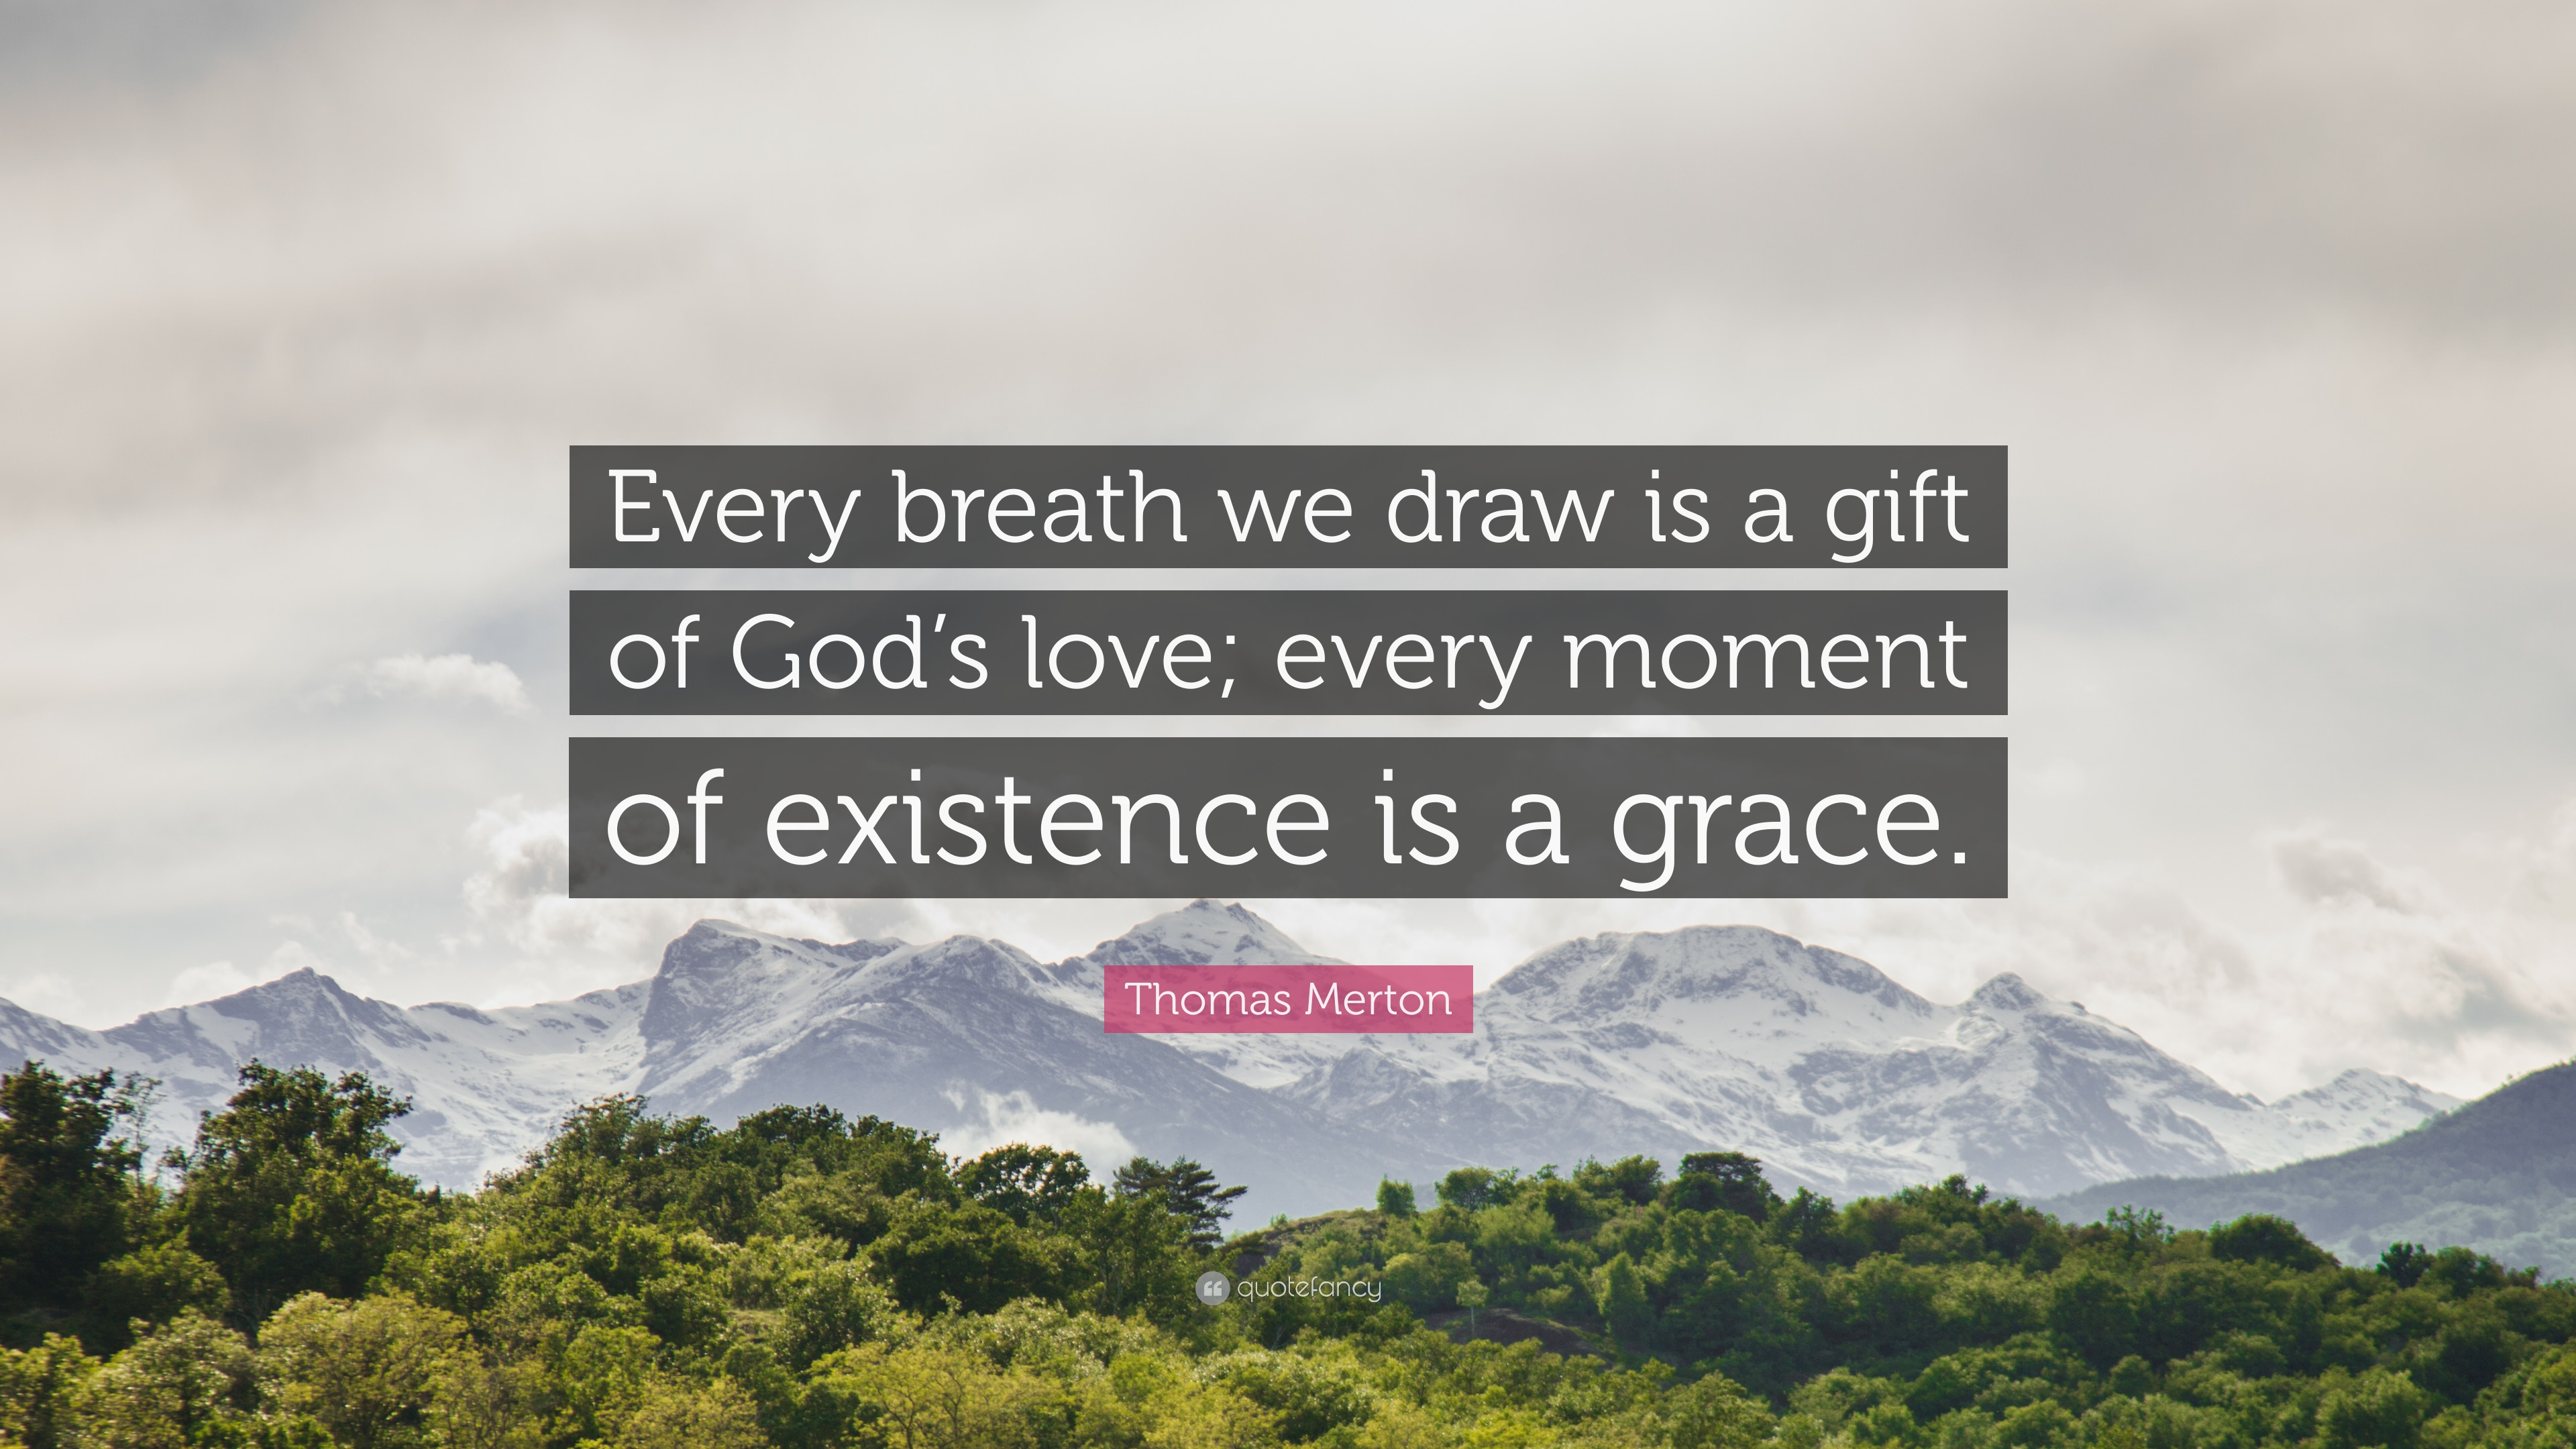 Thomas merton quote every breath we draw is a gift of gods love thomas merton quote every breath we draw is a gift of gods love negle Image collections